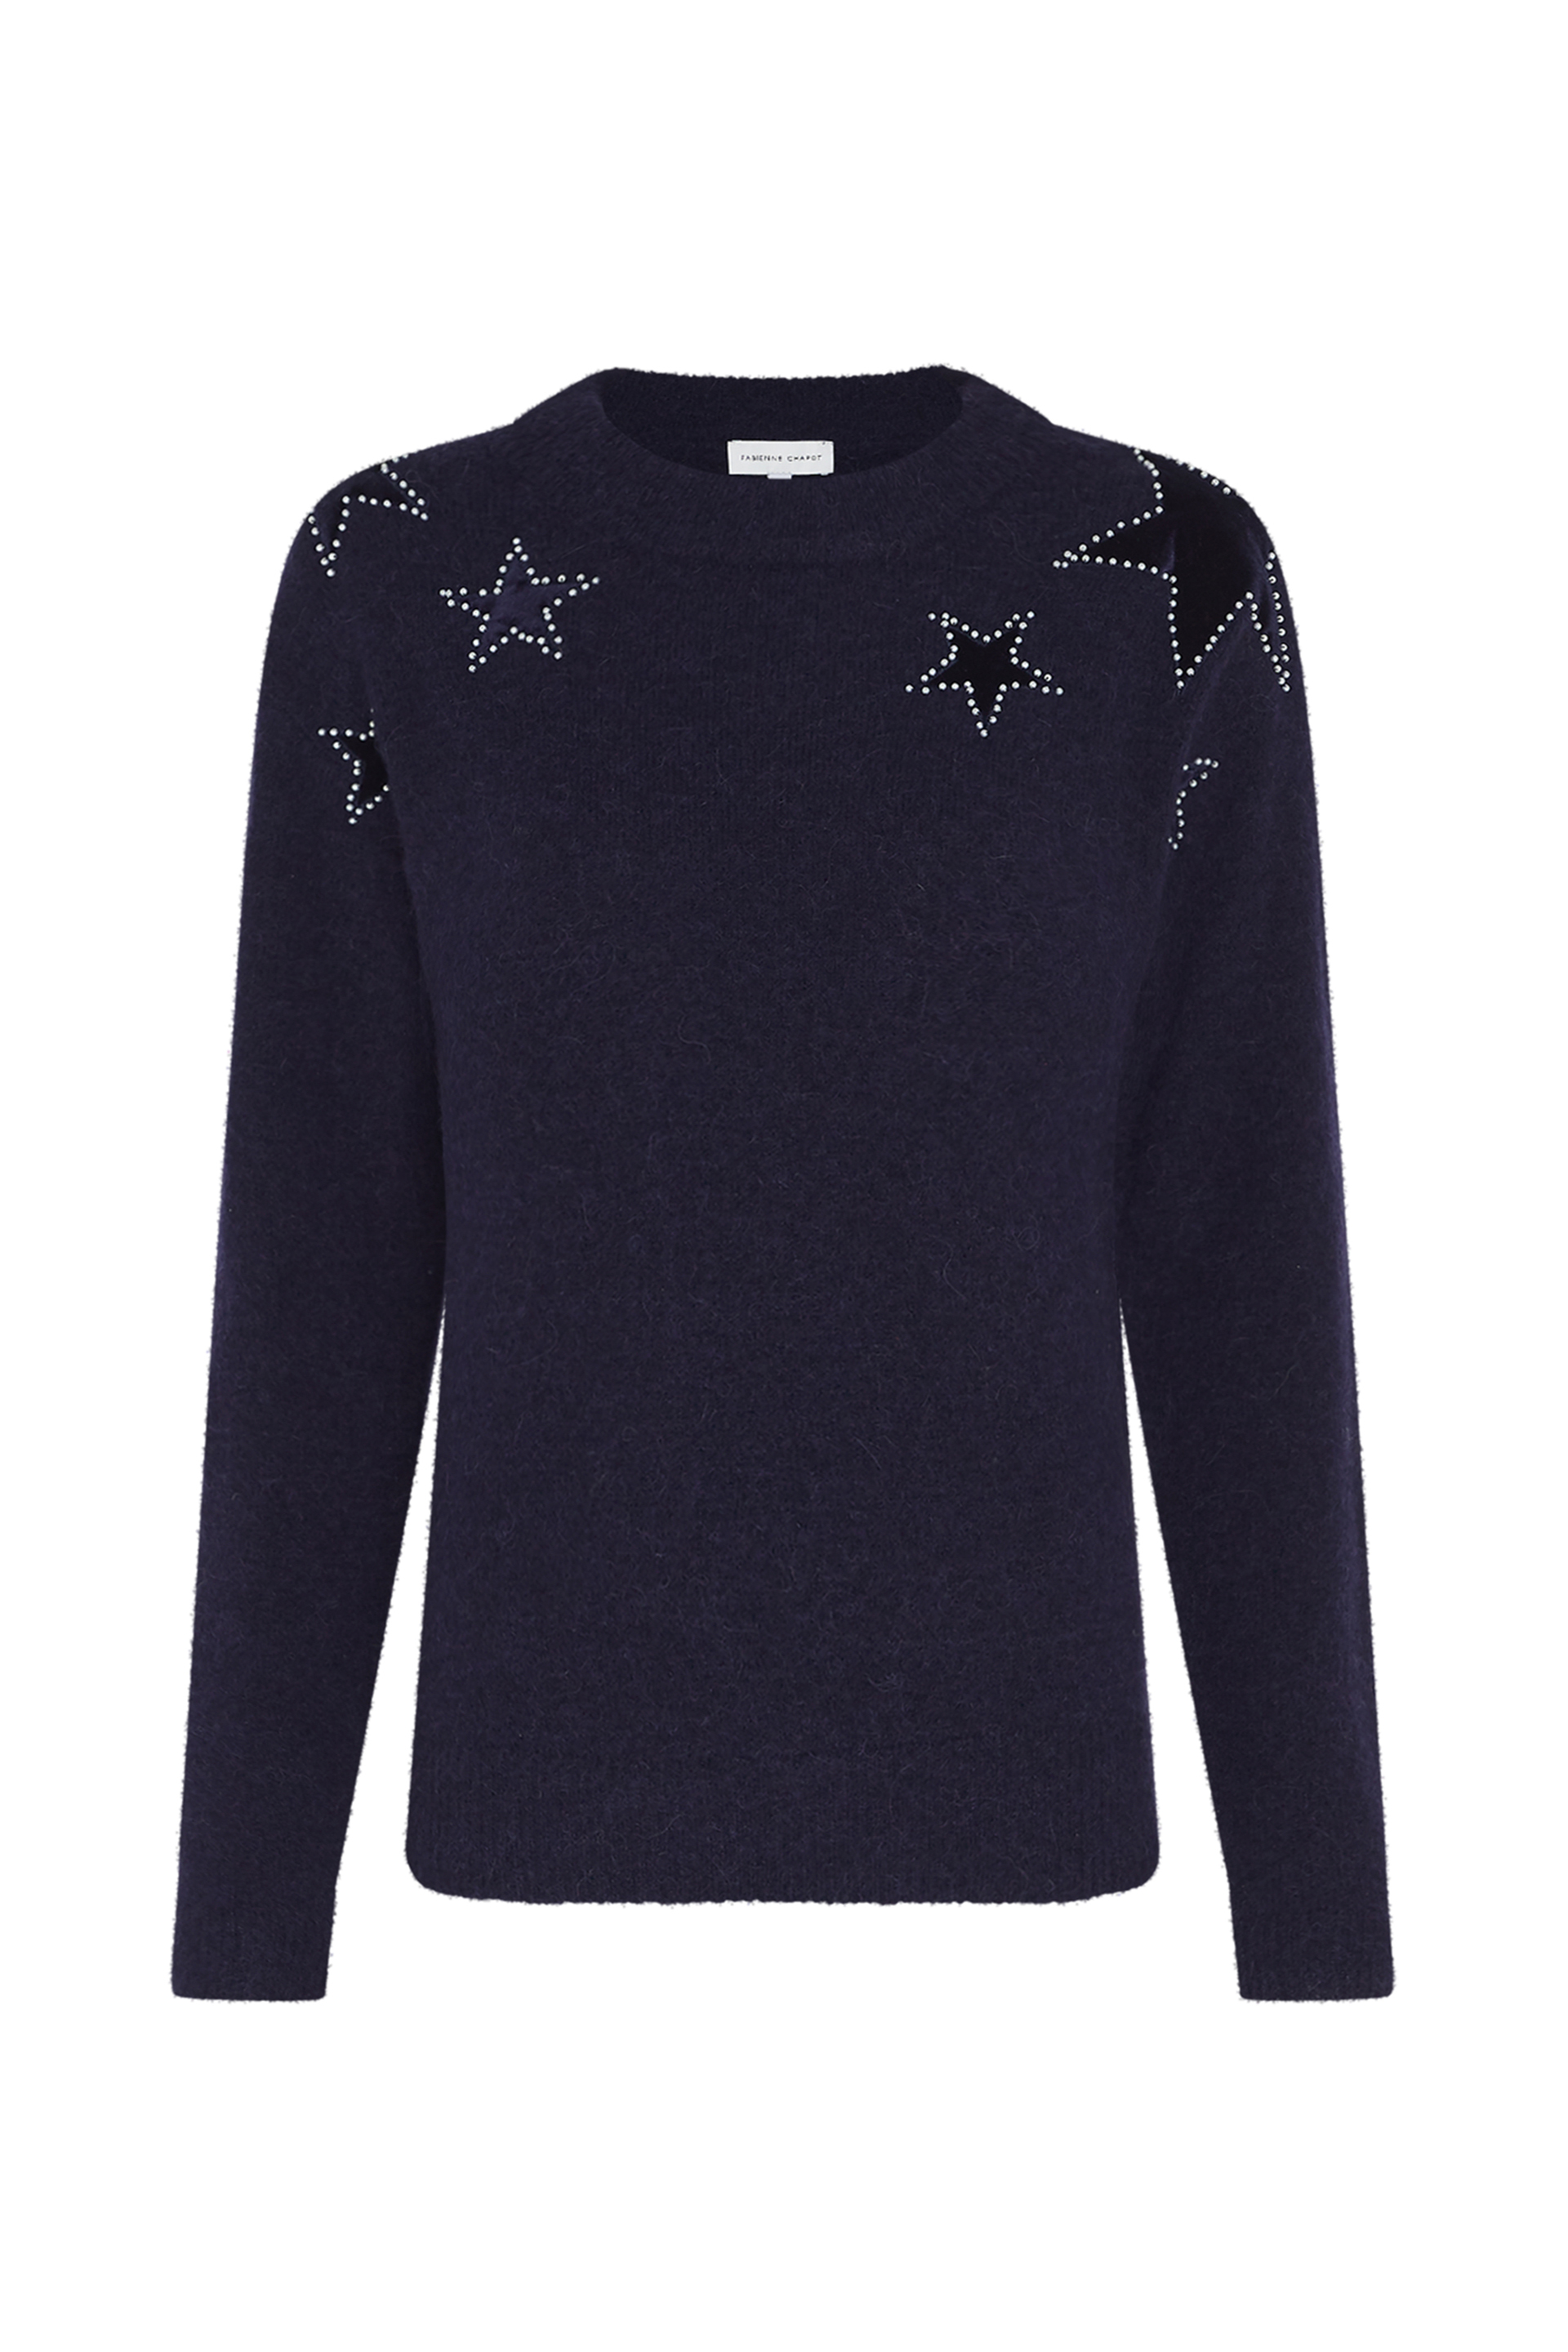 Fabienne Chapot Star Jumper in Navy